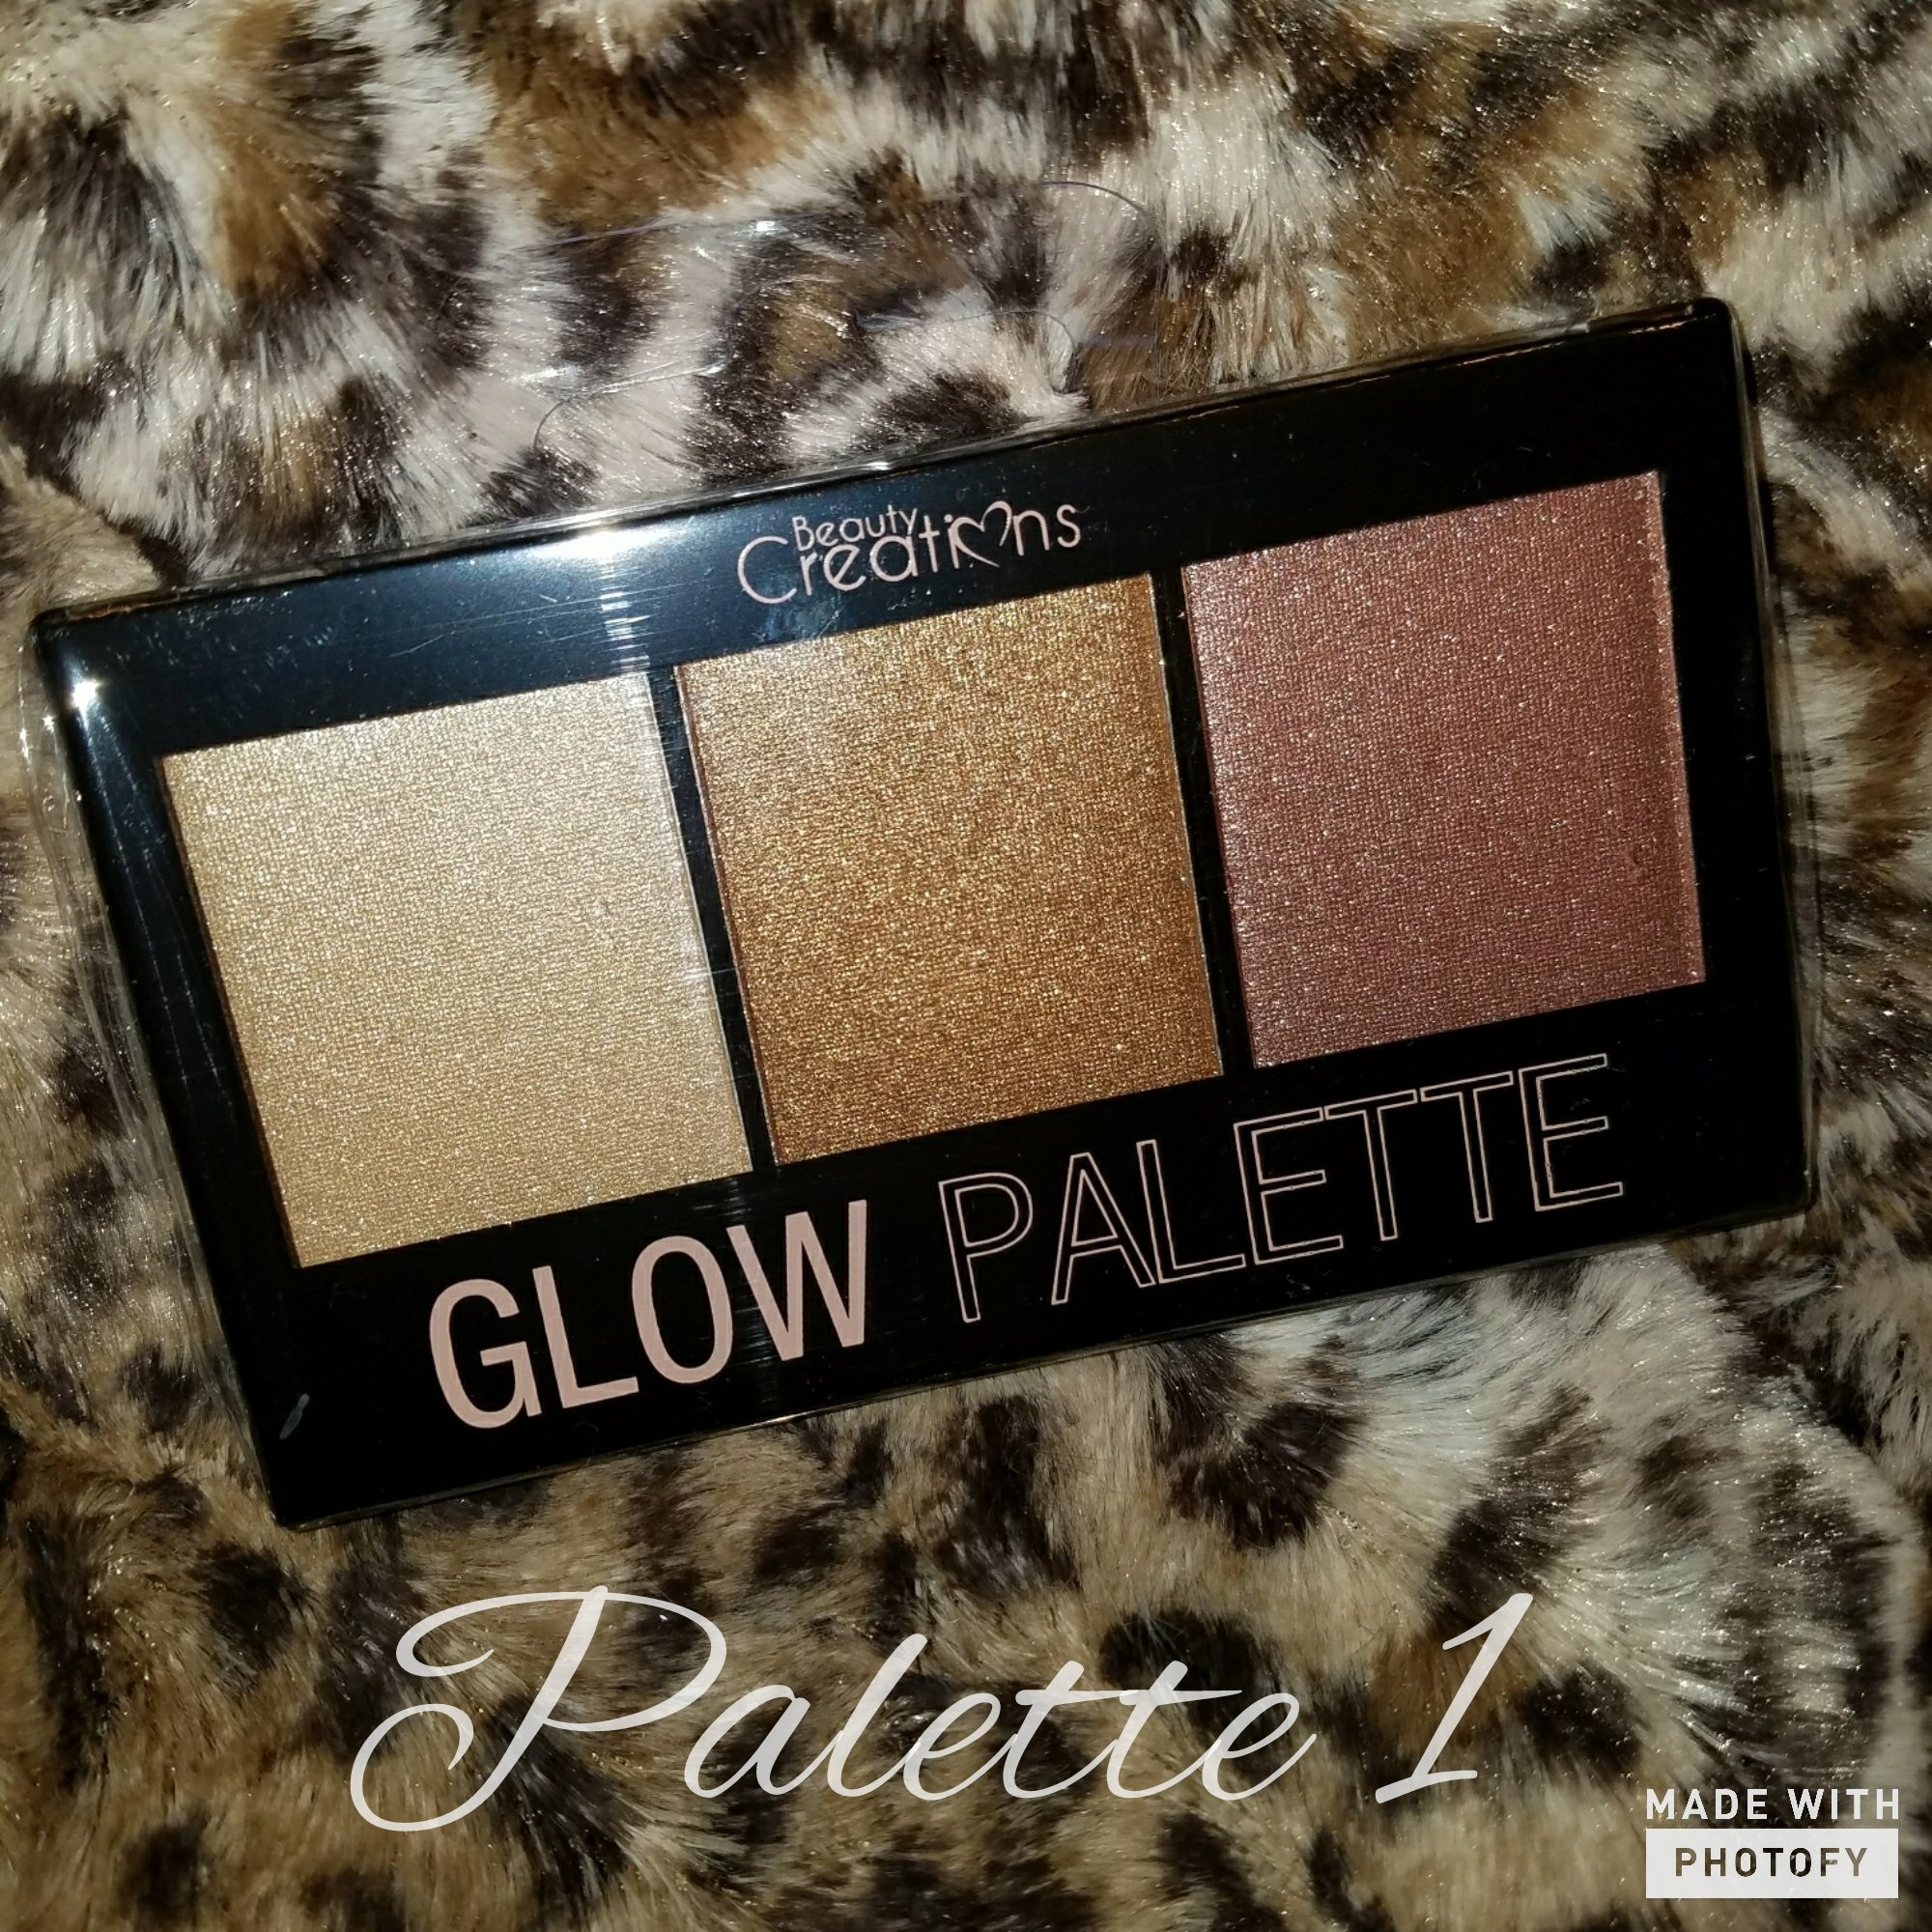 Image of Beauty Creations Glow Palette highlighter #1